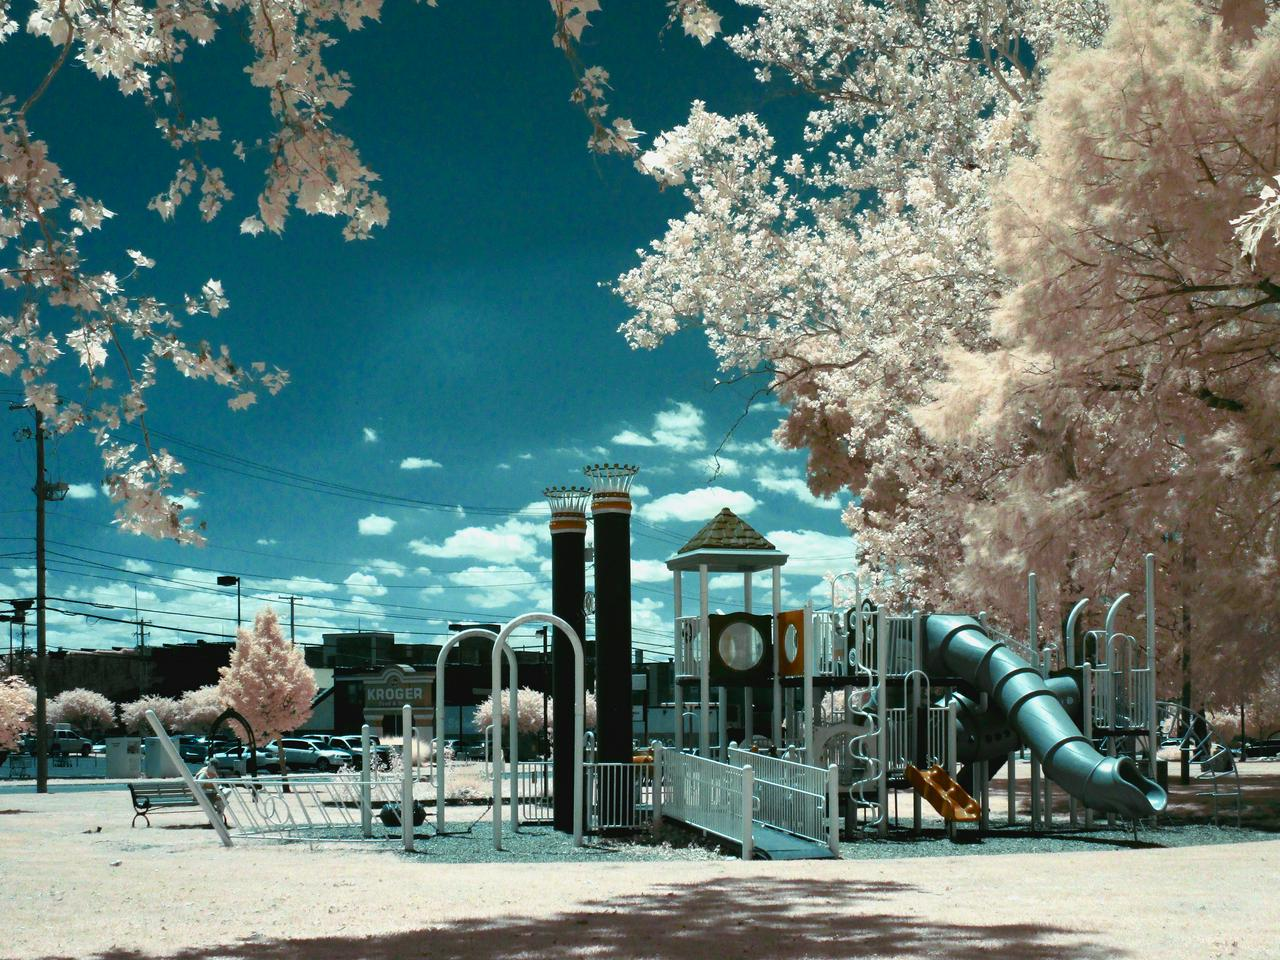 Exterior shot of playground that looks like a river boat